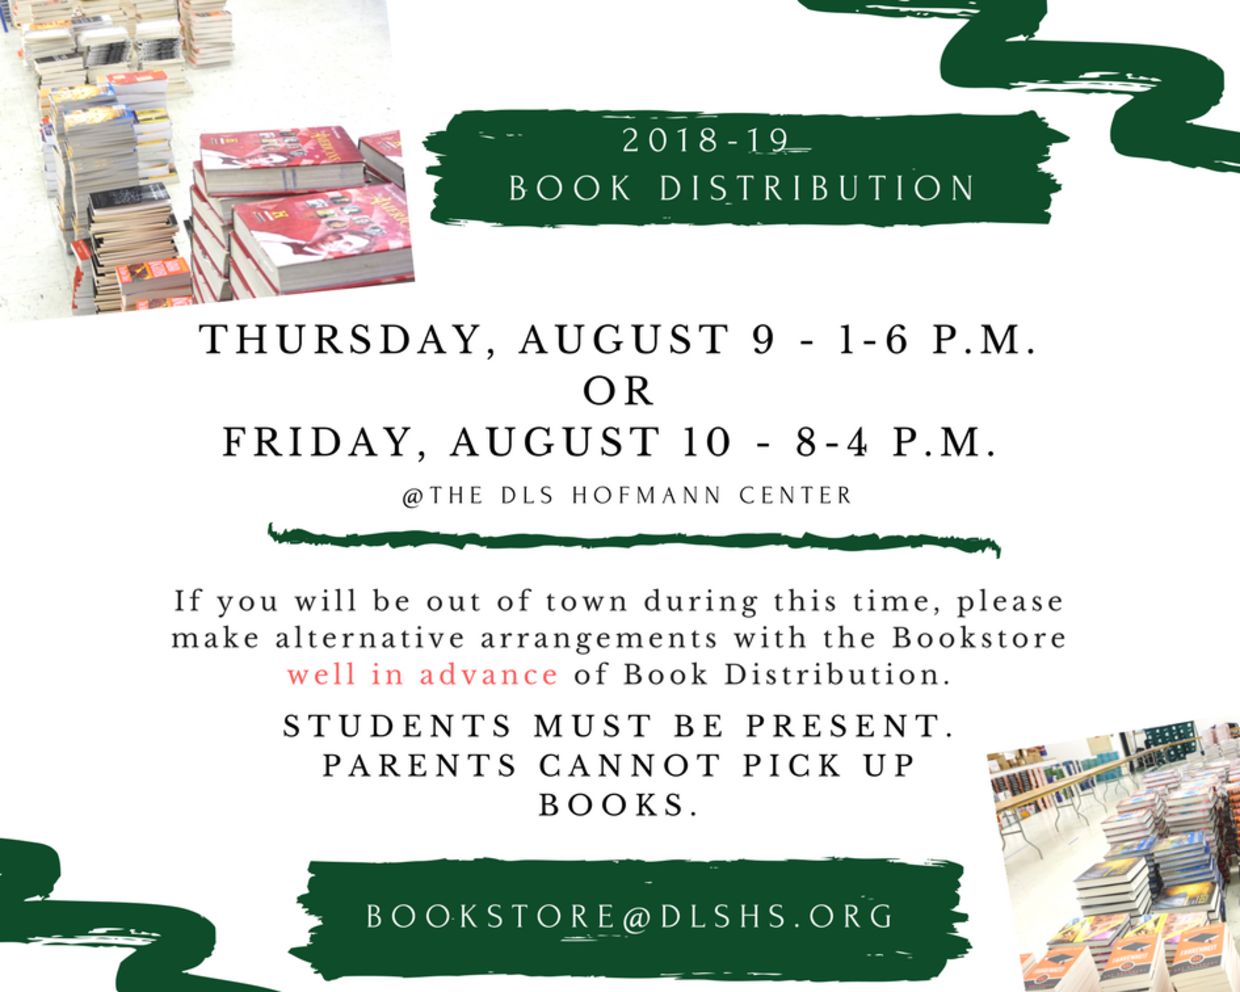 2018-19 Book Distribution - Save the Dates